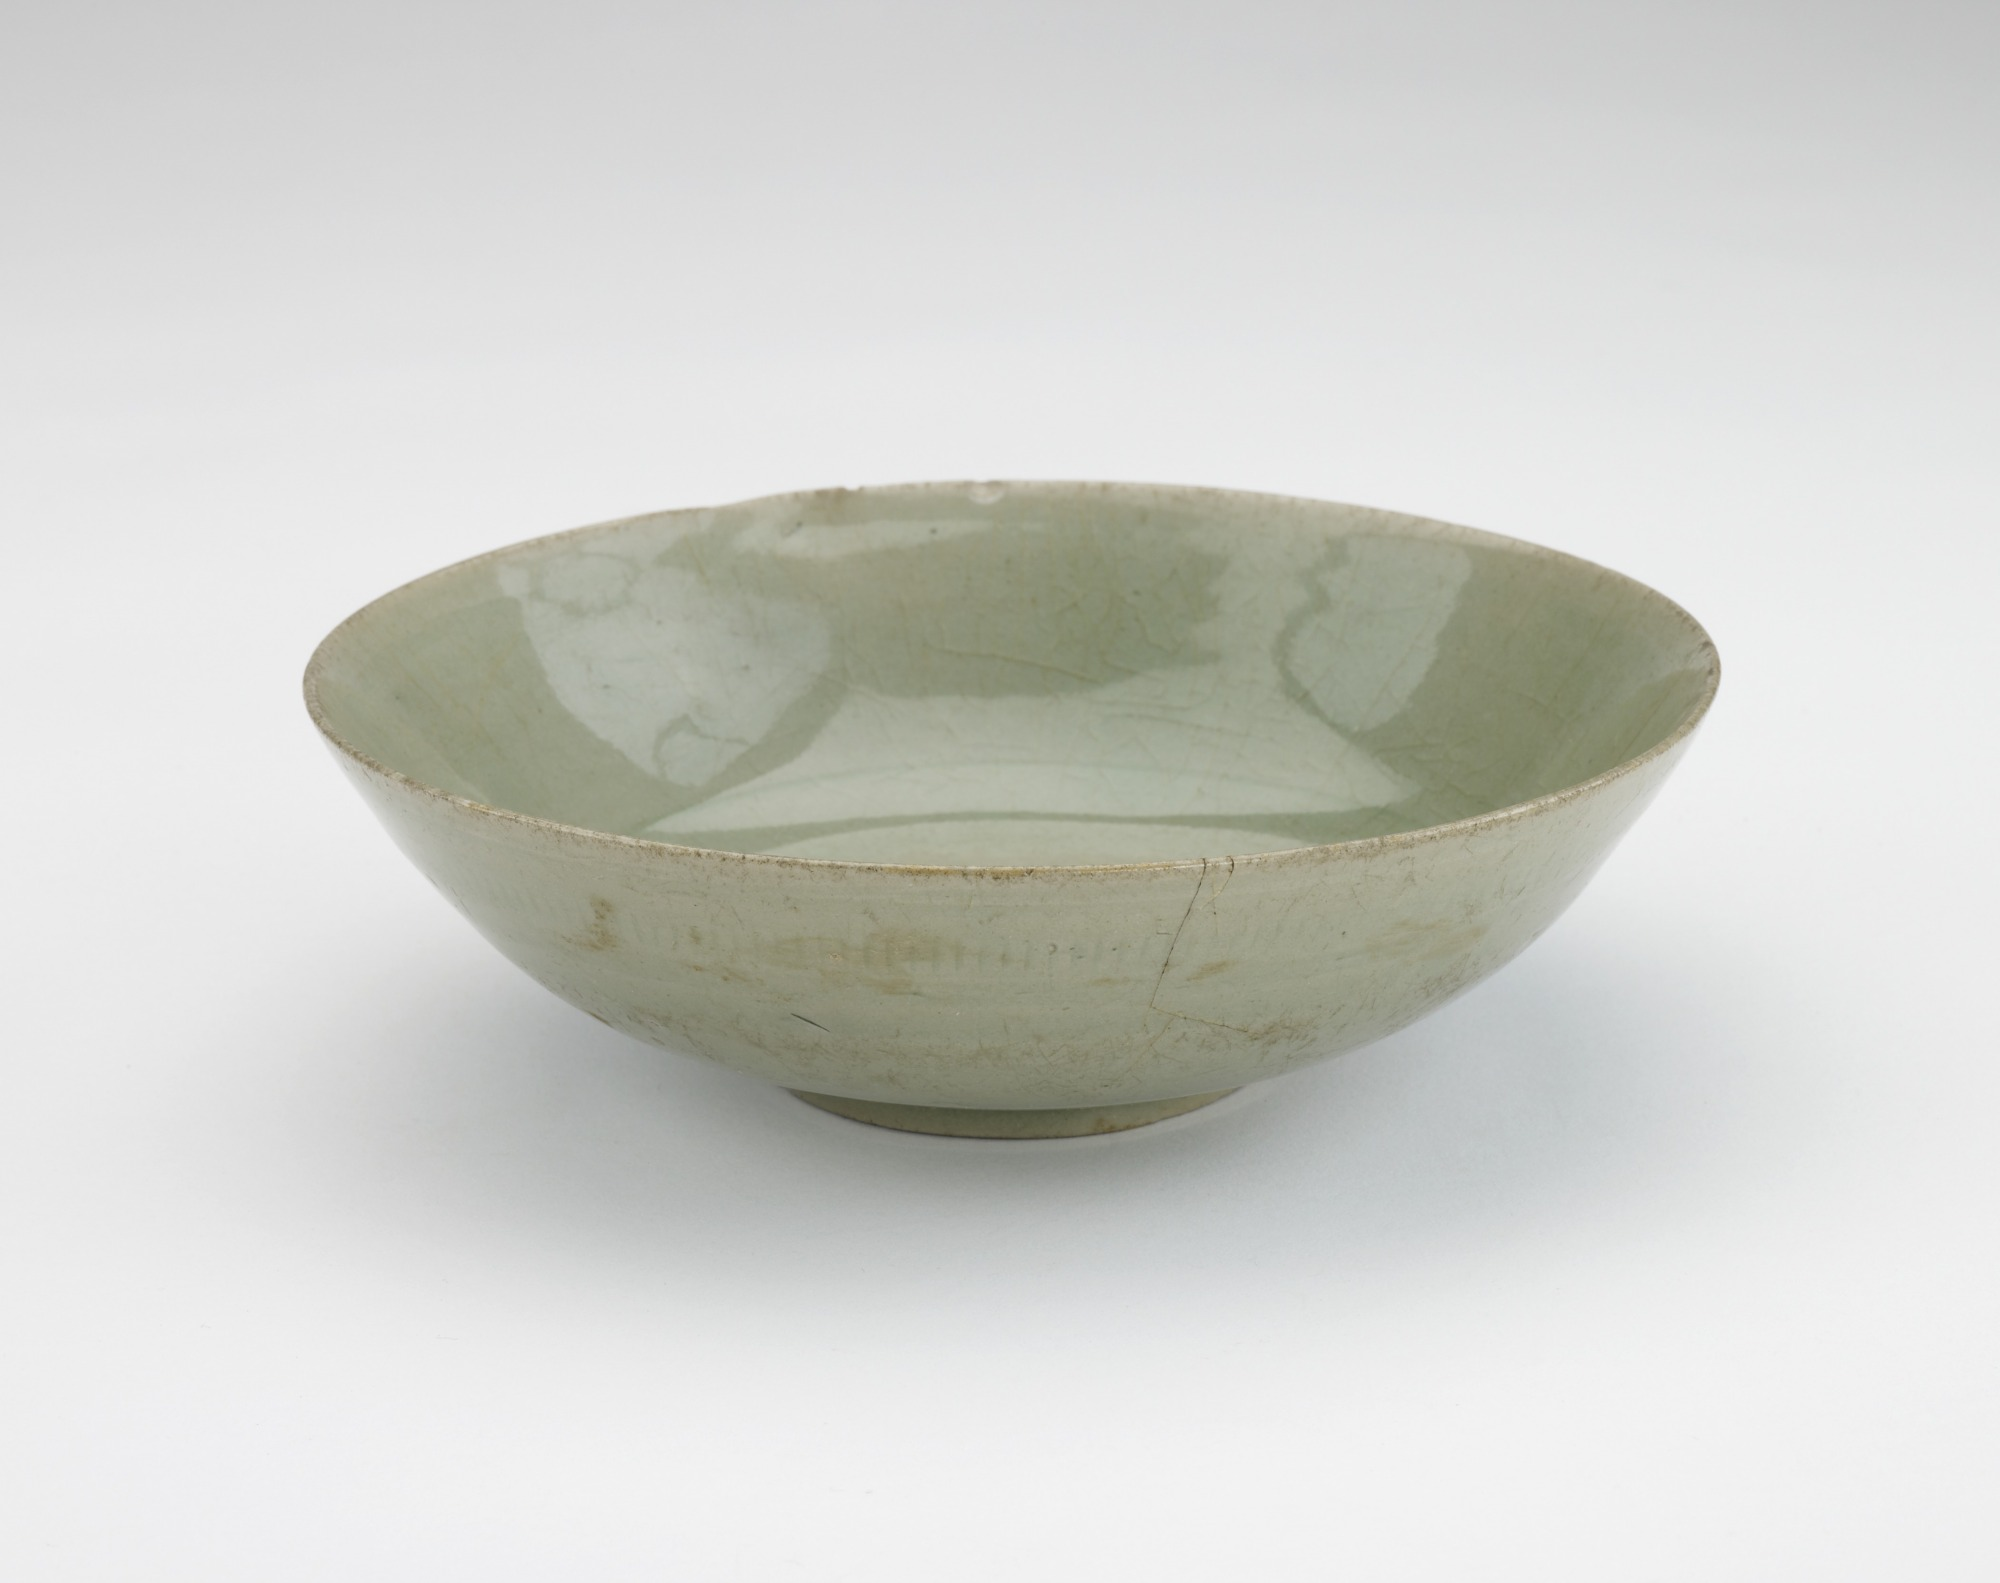 Bowl, 3/4 profile